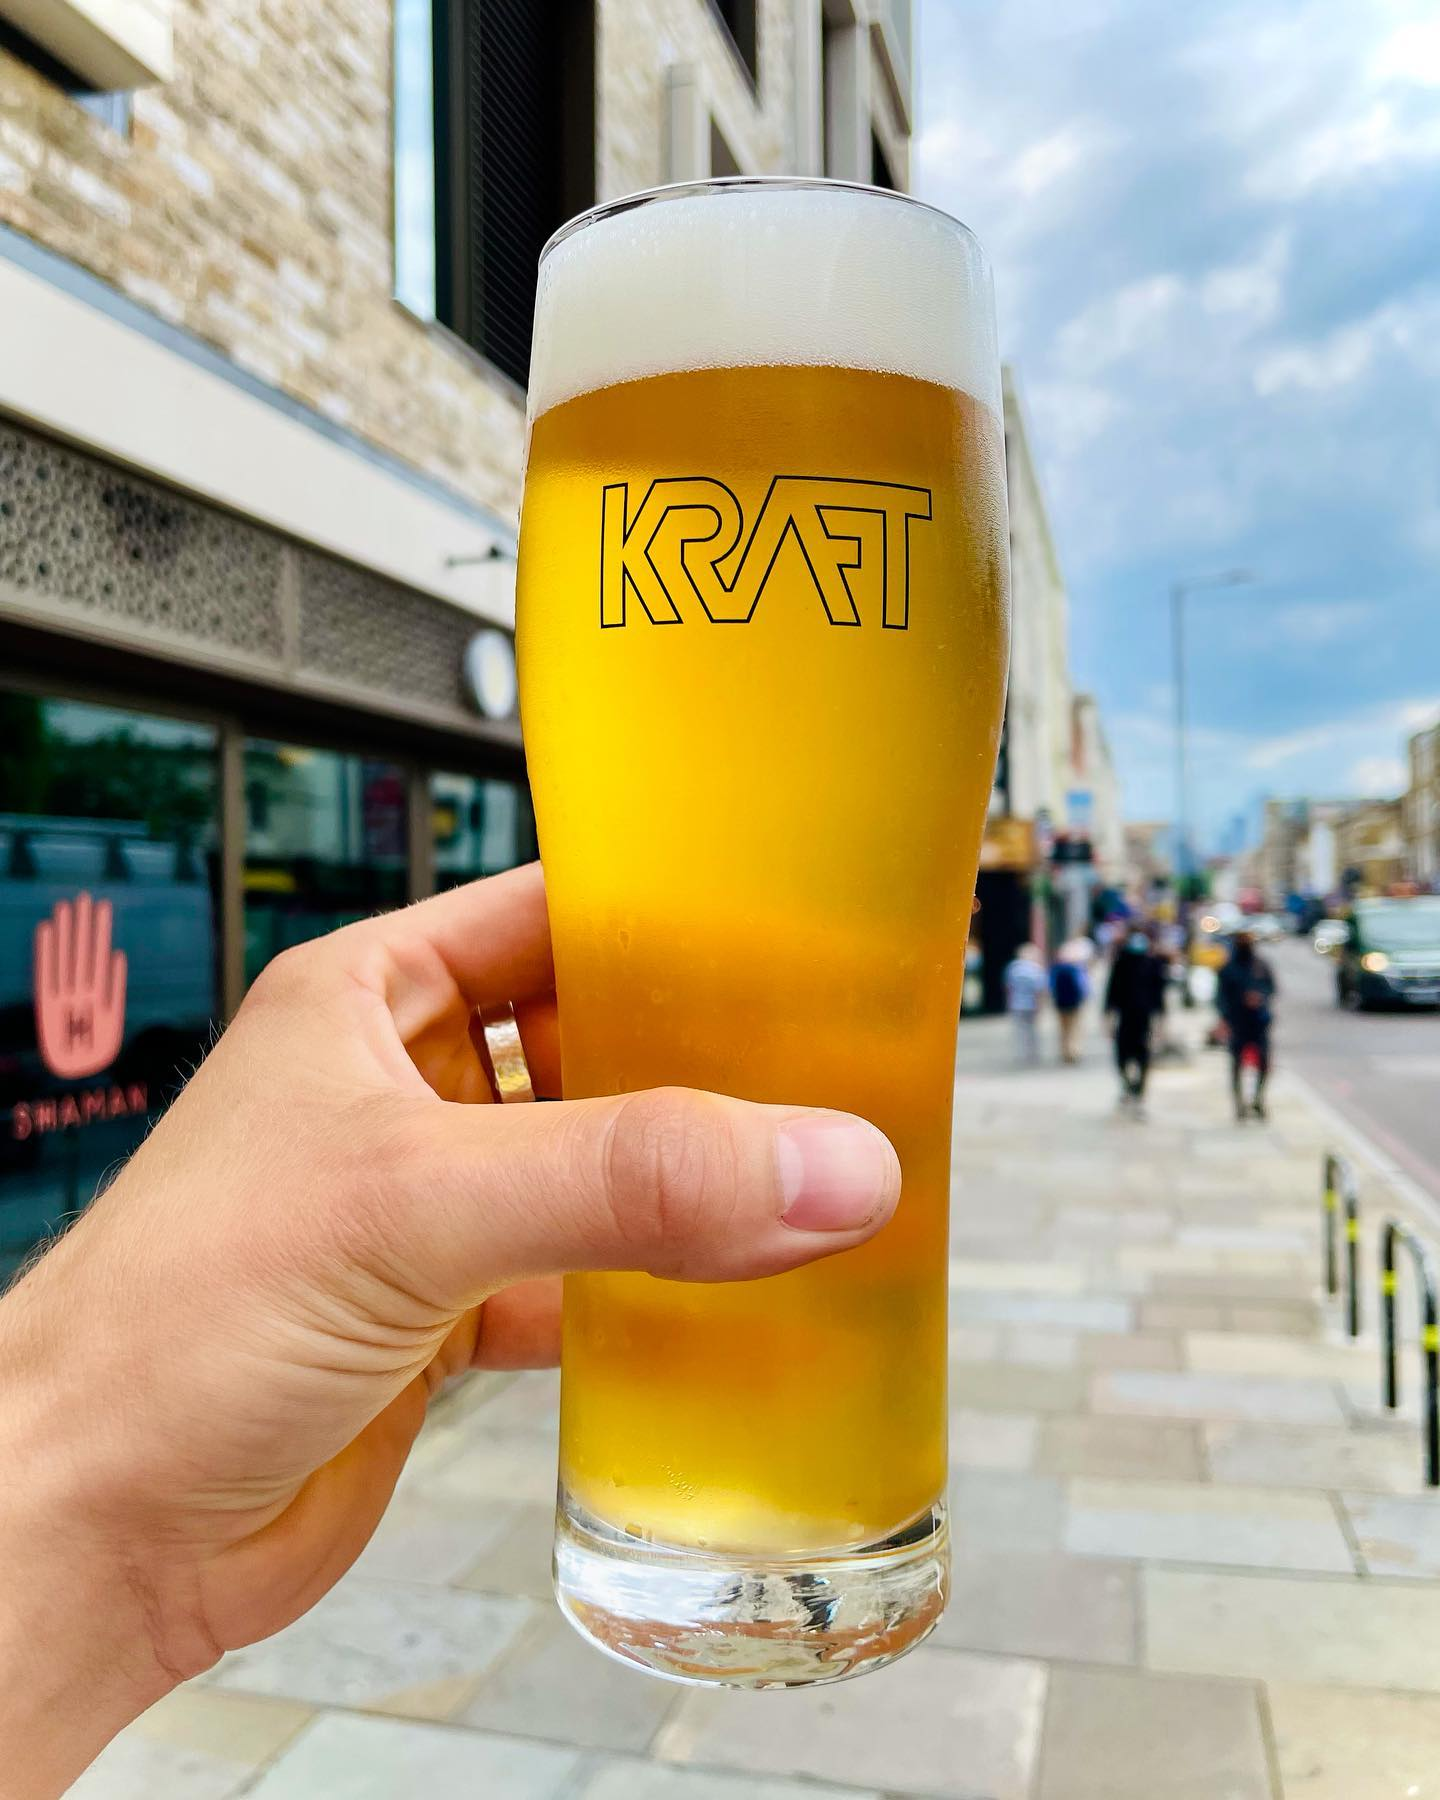 New Beer Release! Peter Pilsner 4.6% 🧊👌💎Our 3rd batch brewed on site at Dalston. This is a crispy boi hopped with Hallertauer Tradition, Spalter Select & Tettnanger. Super sessionable and pouring fresh from the tank from tomorrow! 🤤